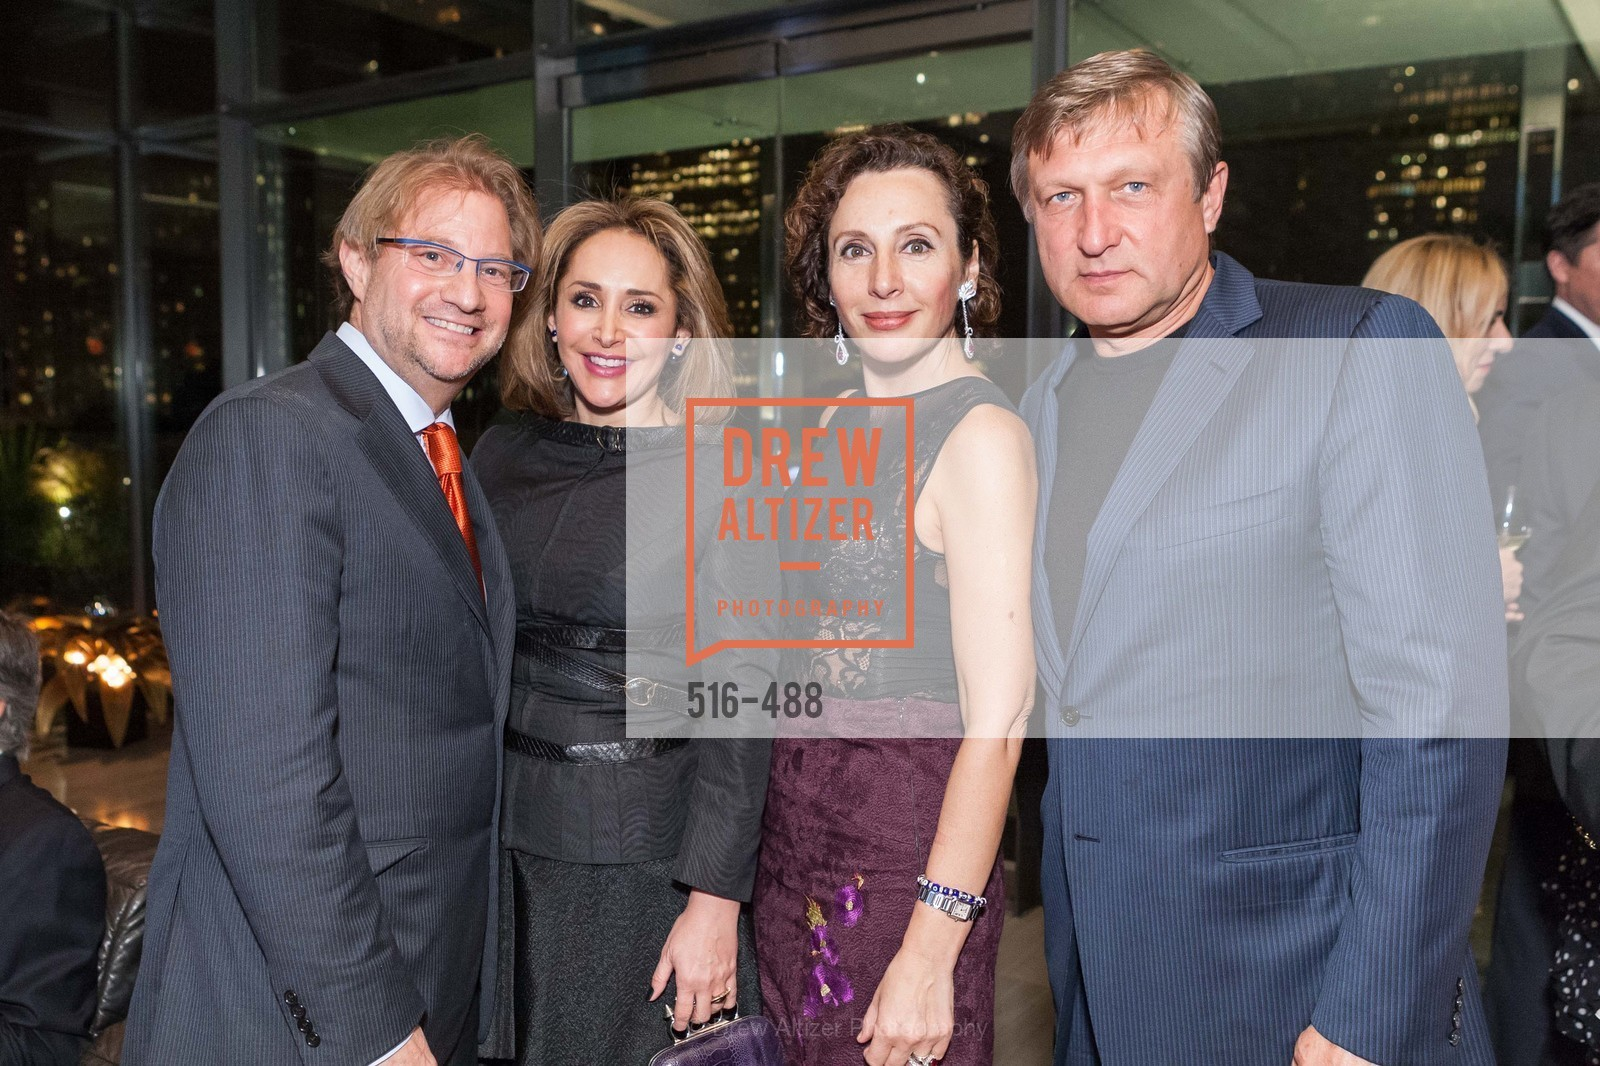 Andres Roemer, Brenda Zarate, Clara Shayevich, Serge Sharapov, SONYA MOLODETSKAYA's Birthday Party, US. The Battery Penthouse, April 1st, 2014,Drew Altizer, Drew Altizer Photography, full-service agency, private events, San Francisco photographer, photographer california